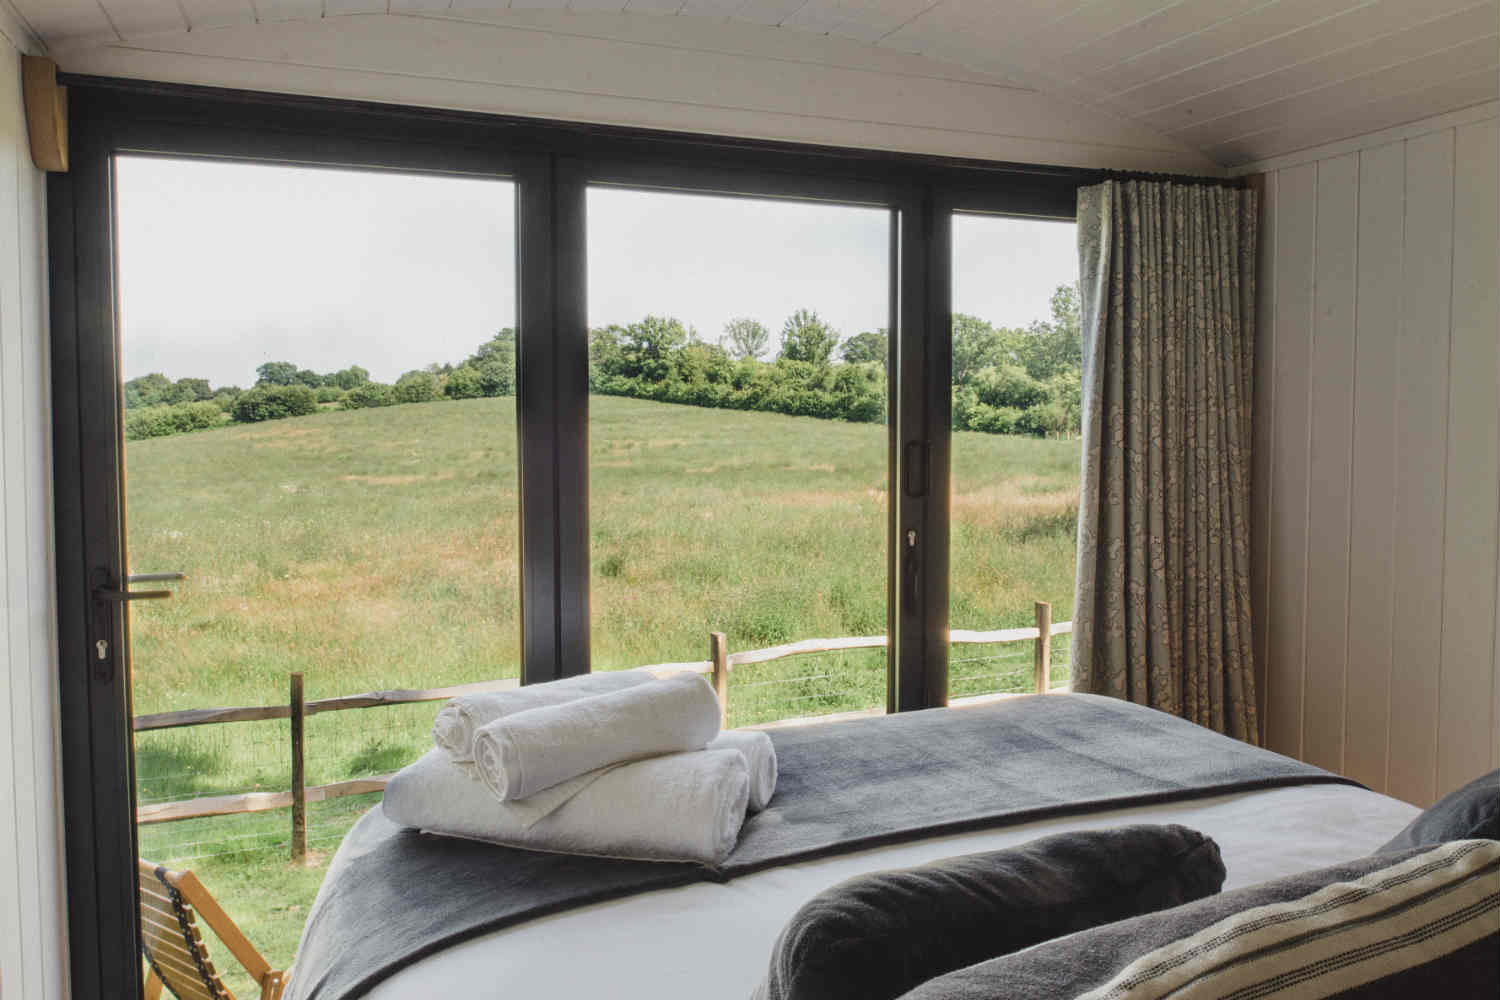 Soak in the views from bed